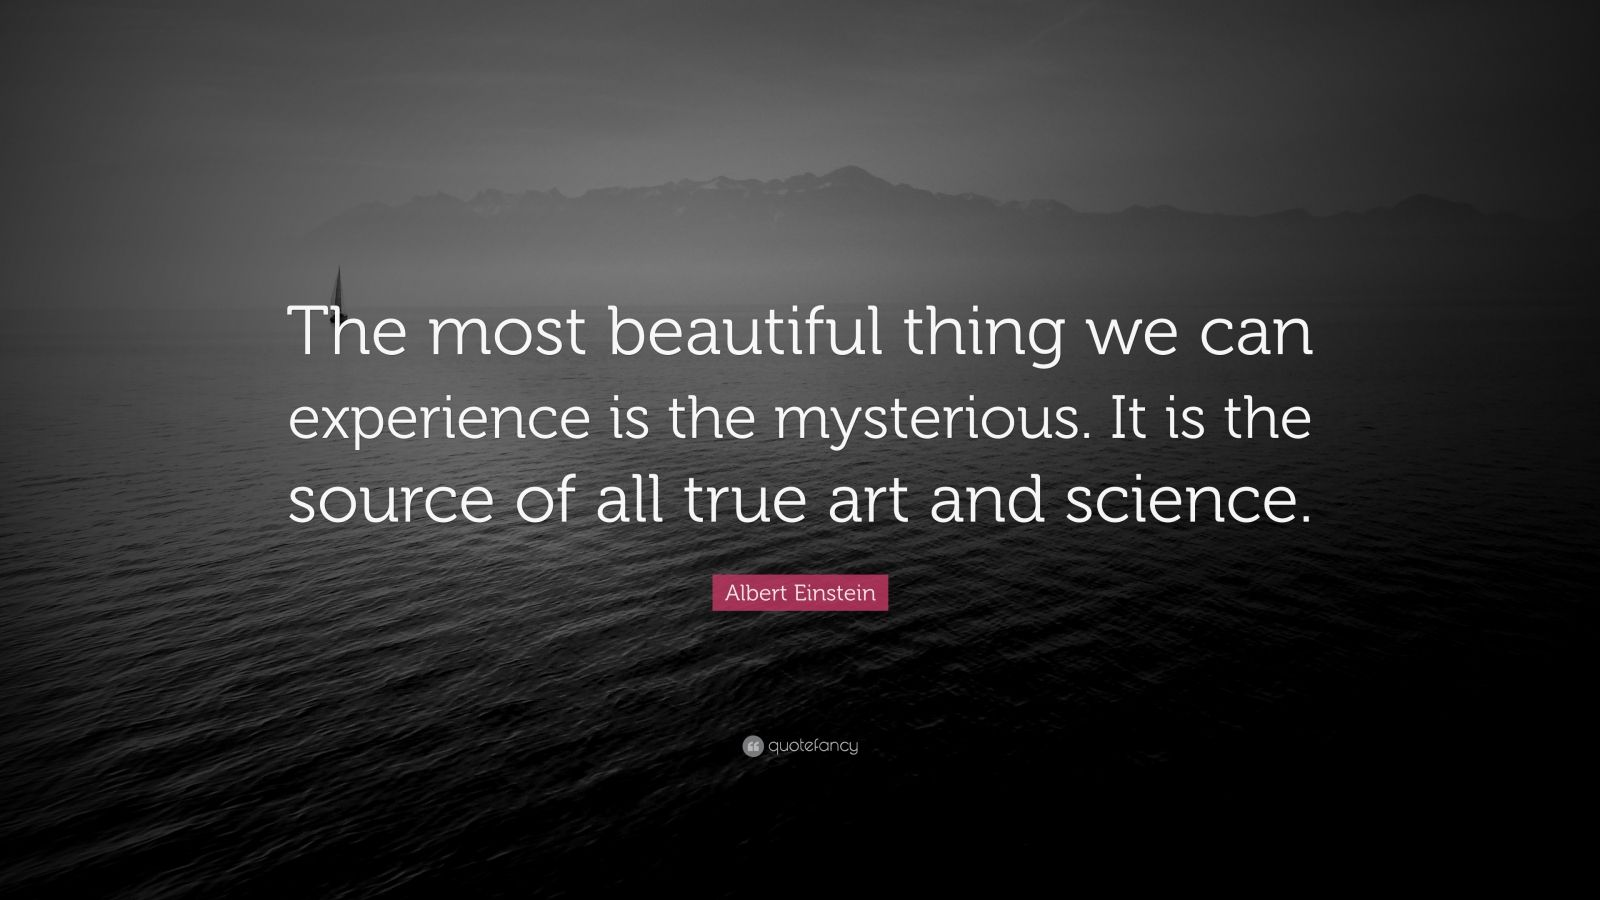 Motivational Life Quotes Wallpapers Albert Einstein Quote The Most Beautiful Thing We Can